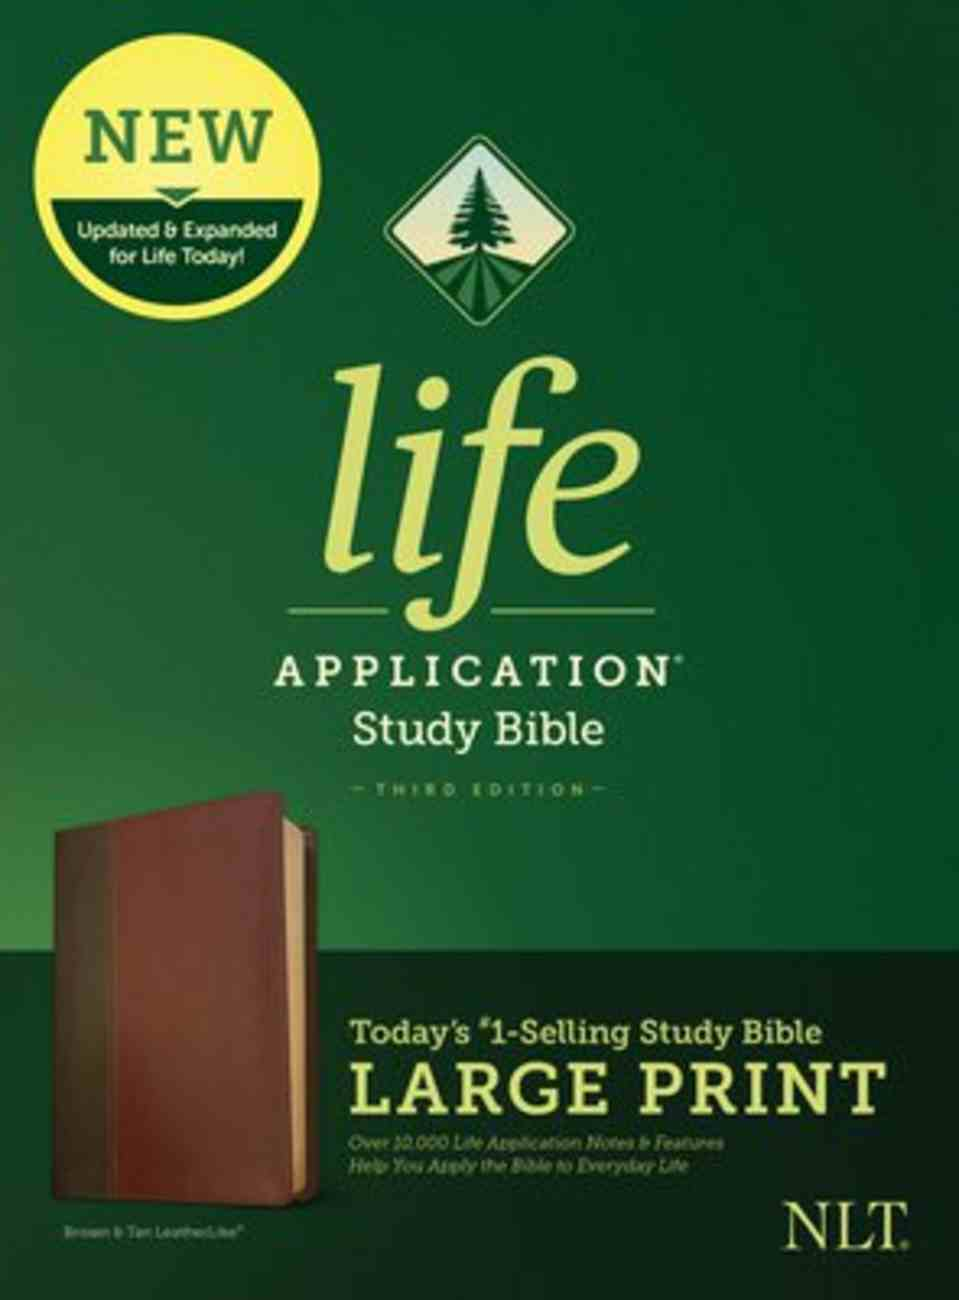 NLT Life Application Study Bible Third Edition Large Print Brown/Tan (Black Letter Edition) Imitation Leather